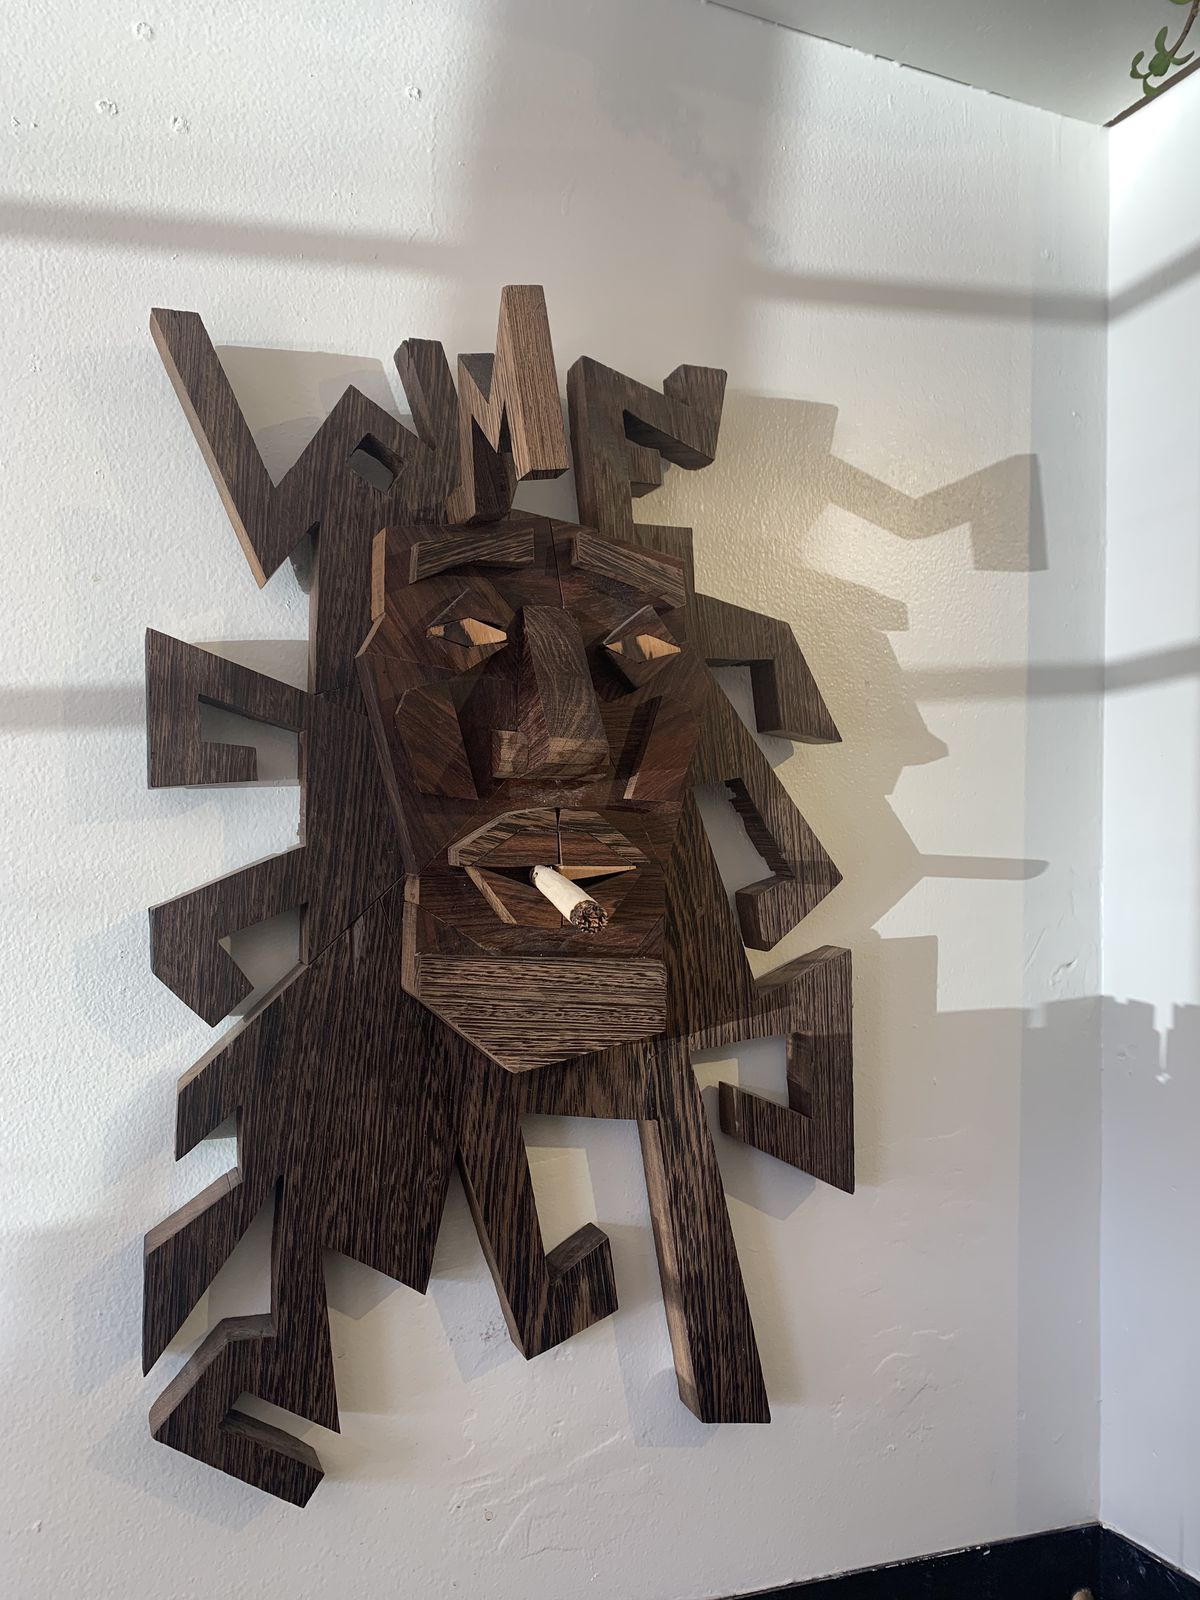 A mask on the wall of the cafe